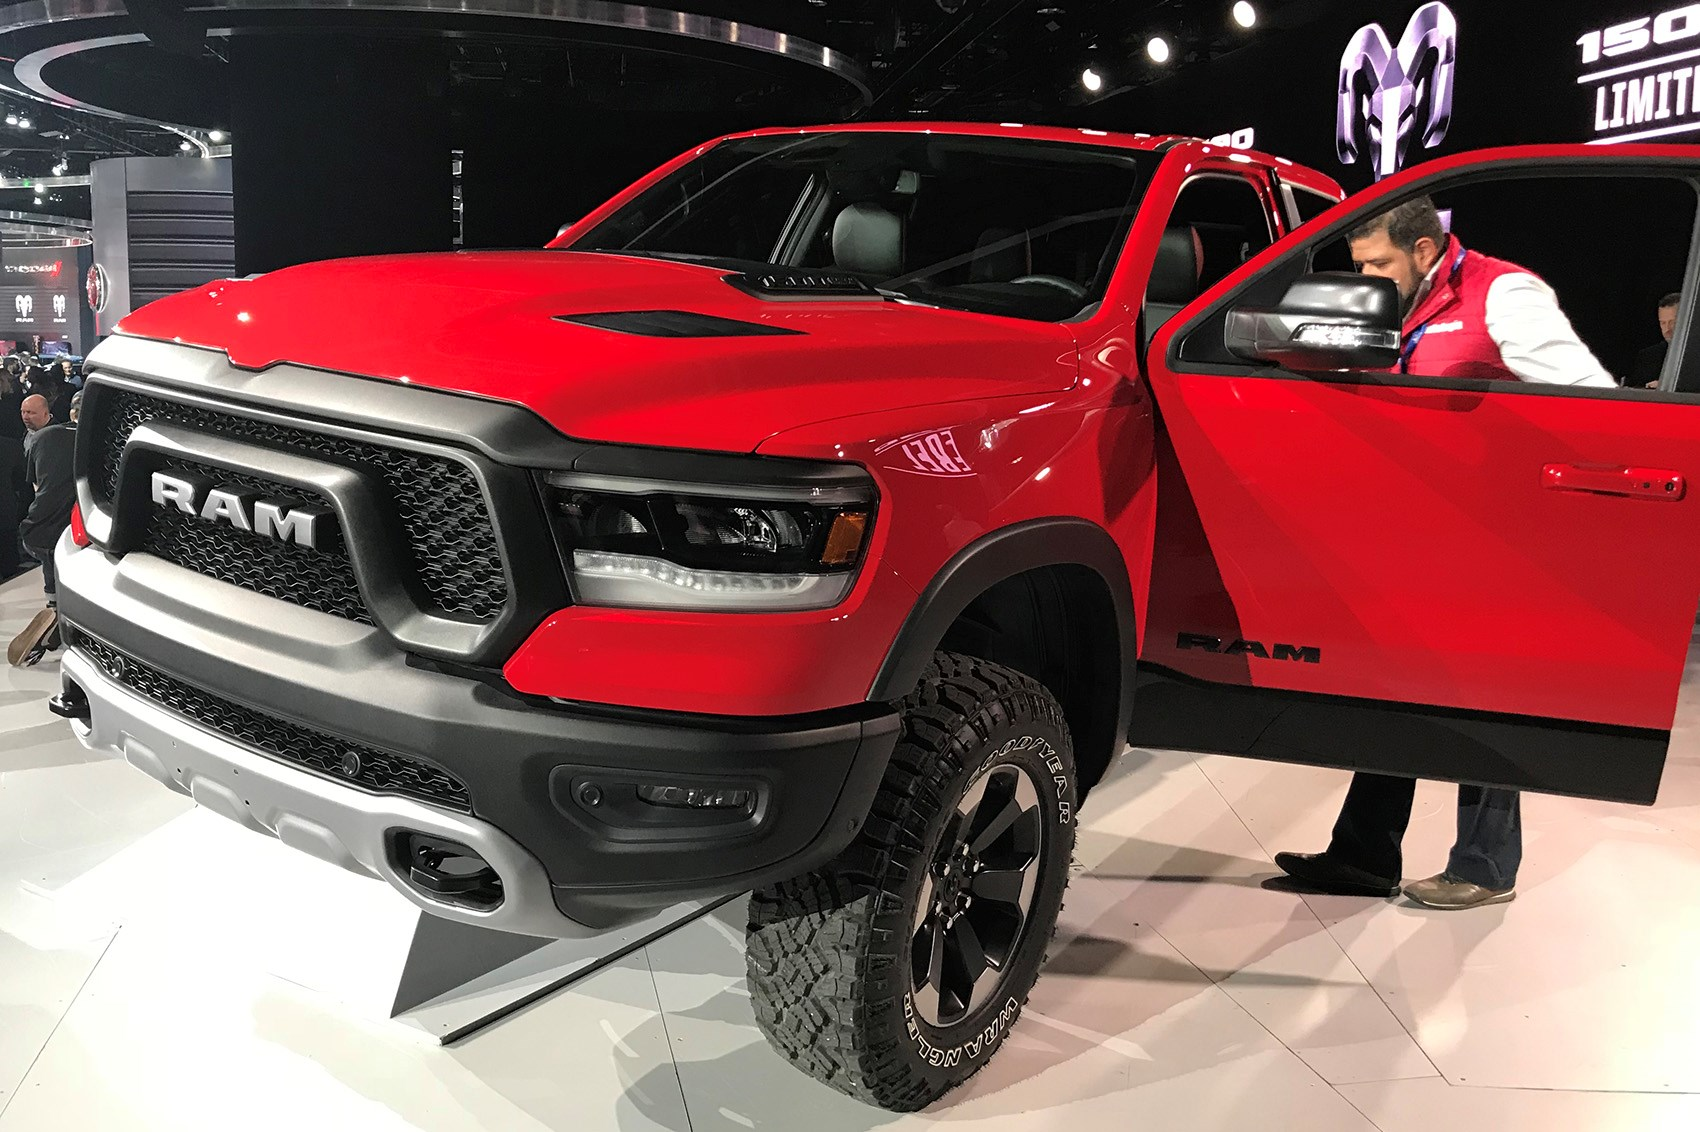 new 2019 ram 1500 pick up unveiled pictures specs. Black Bedroom Furniture Sets. Home Design Ideas